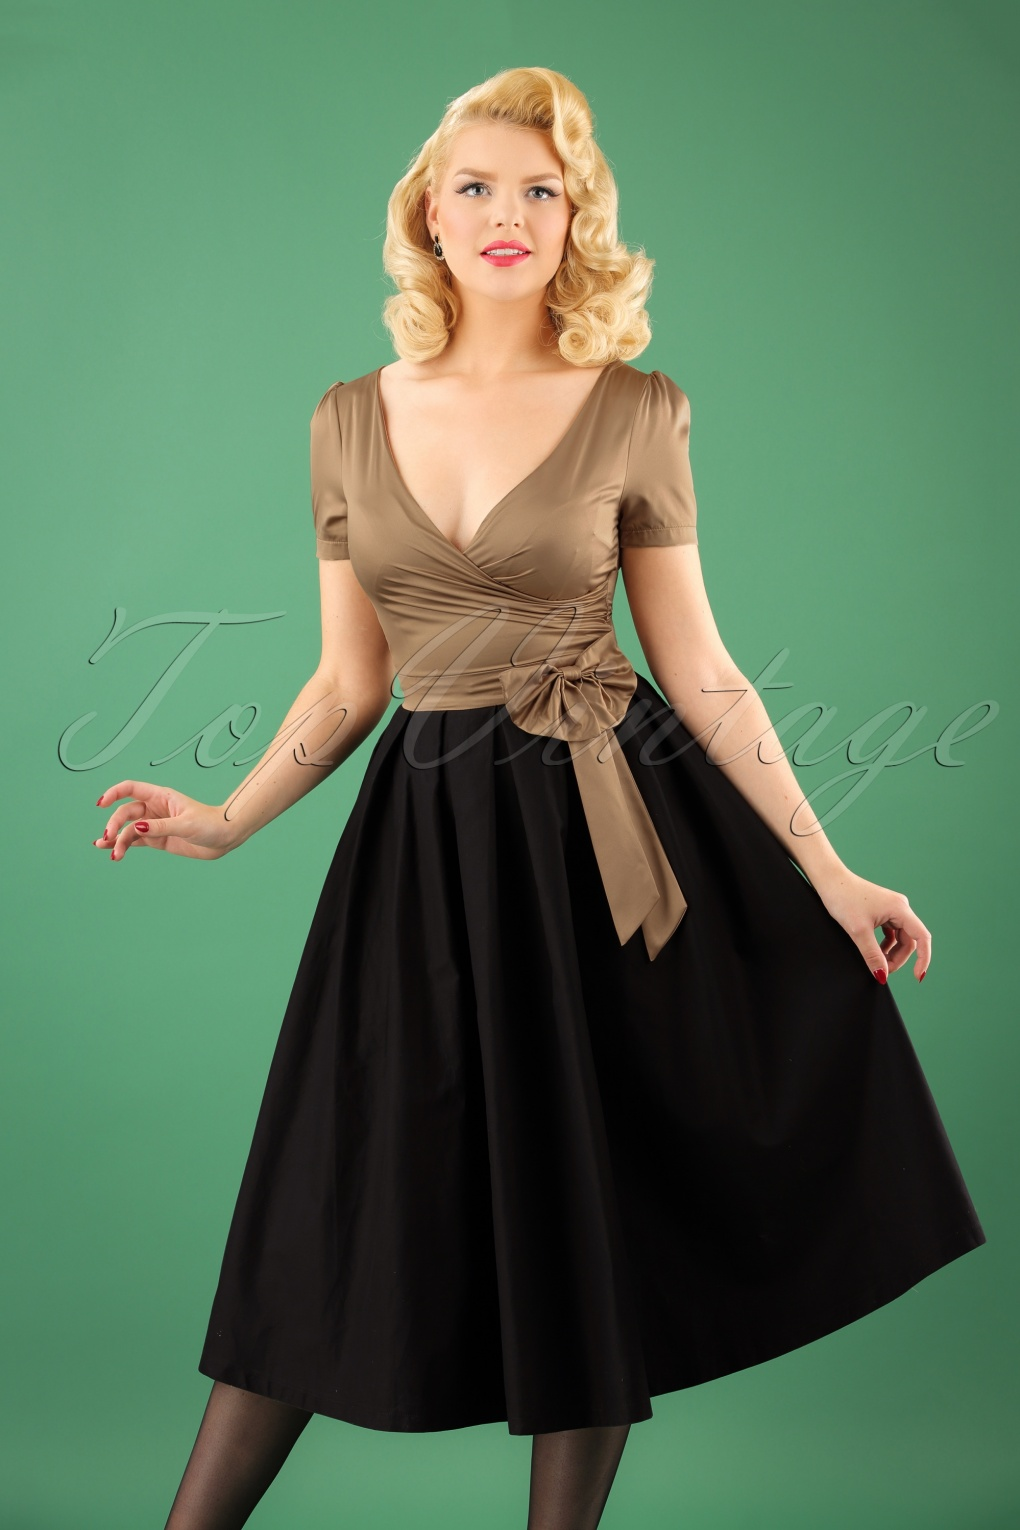 500 Vintage Style Dresses for Sale 50s Gina Glamorous Tea Party Dress in Gold and Black £48.53 AT vintagedancer.com